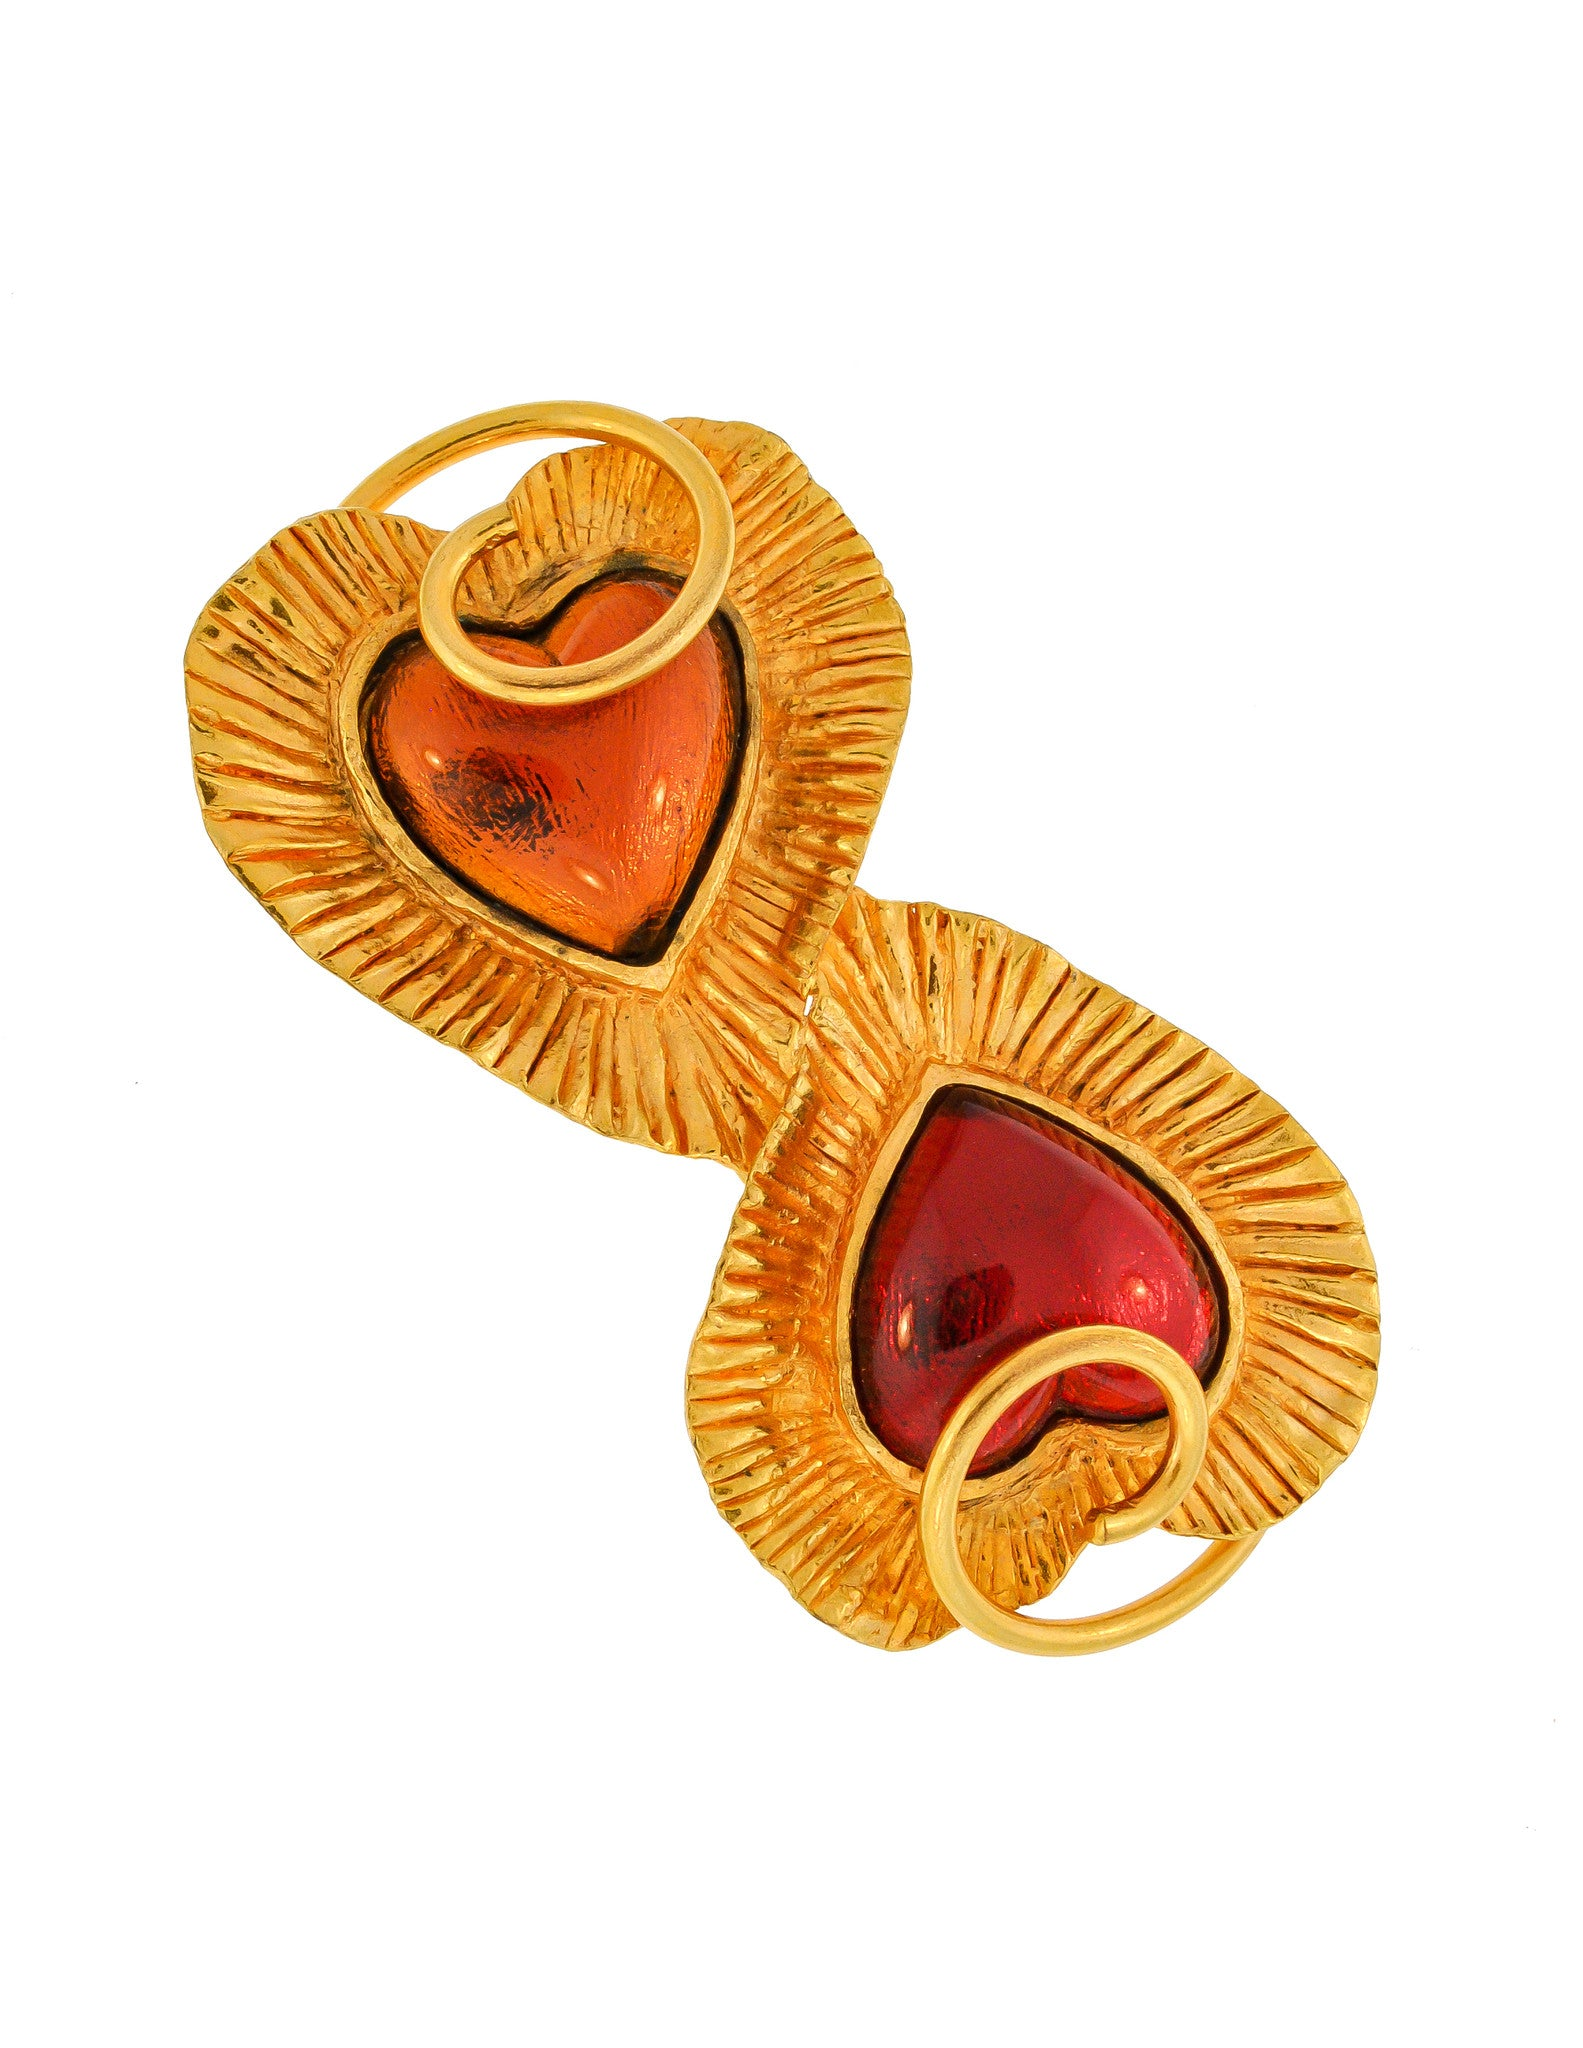 YSL Vintage Red & Orange Double Heart Gold Brooch - Amarcord Vintage Fashion  - 1